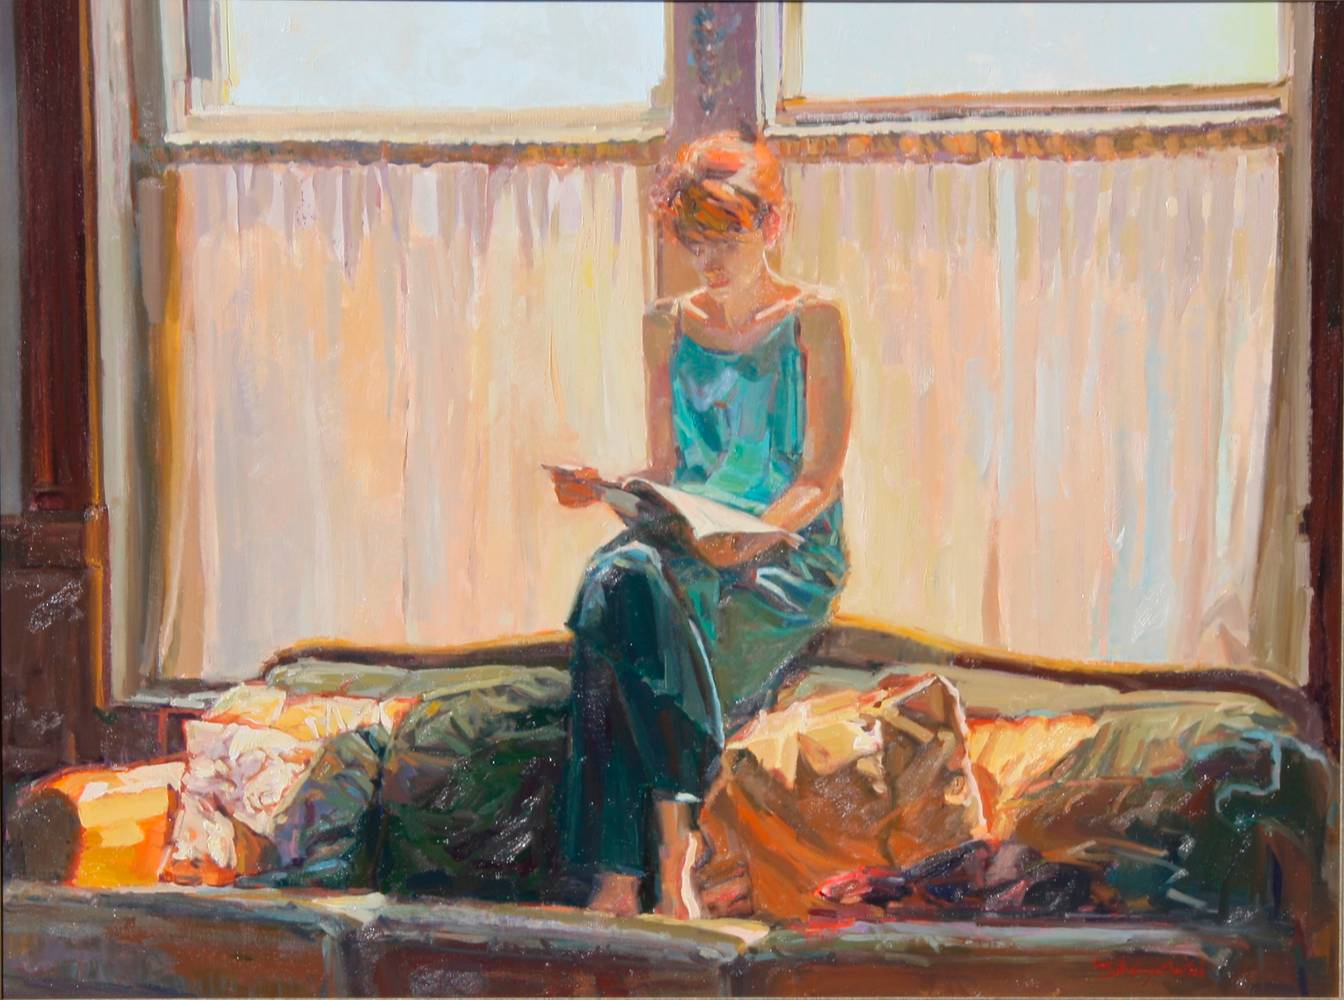 Oil painting Saturday Morning  by Susette Gertsch